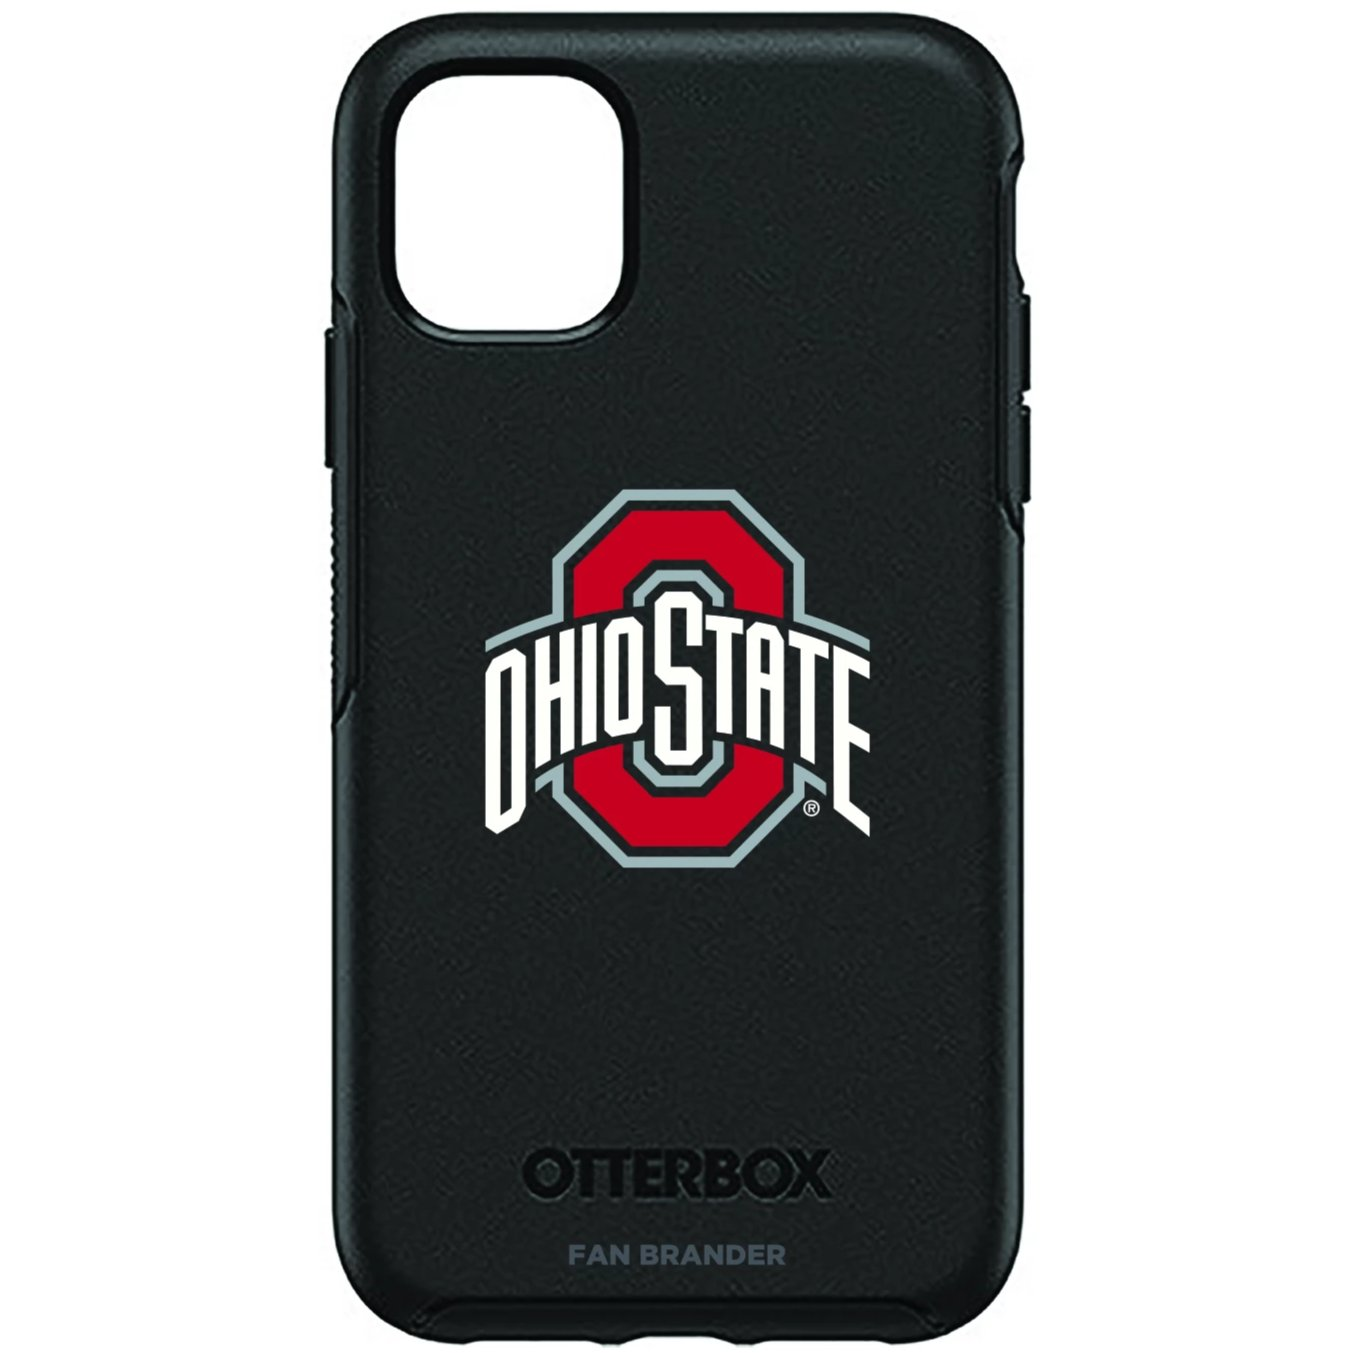 Ohio State Buckeyes Otterbox Symmetry Case (for iPhone 11, Pro, Pro Max)